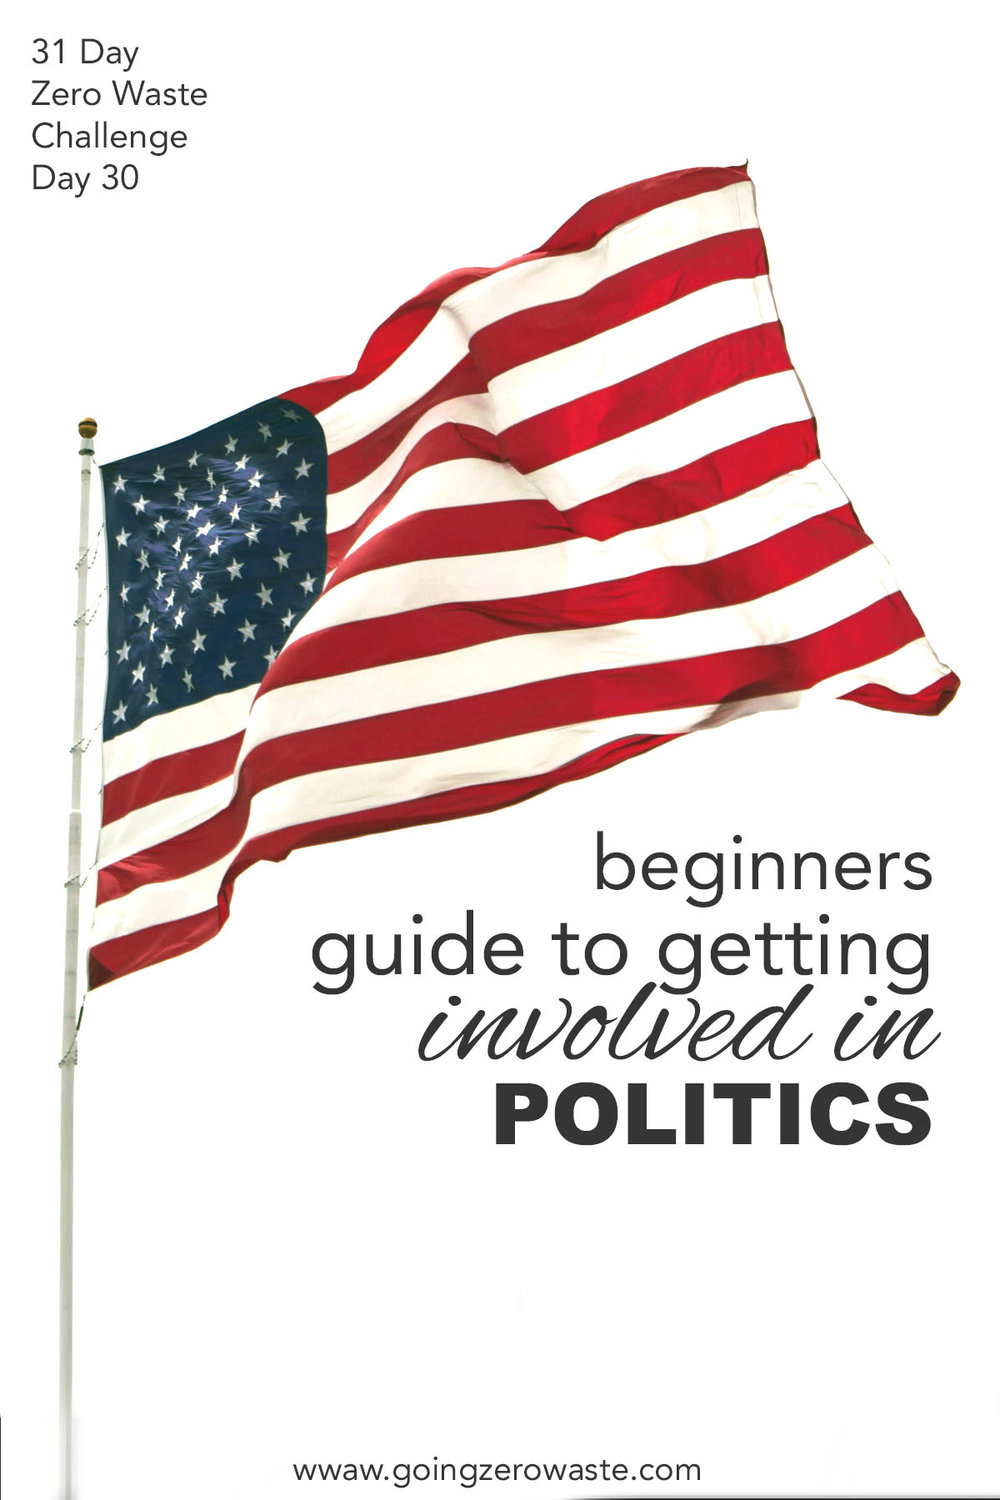 Beginners guide to getting politically involved from the 31 day zero waste challenge from www.goingzerowaste.com #politicallyinvolved #activism #zerowaste #zerowastechallenge